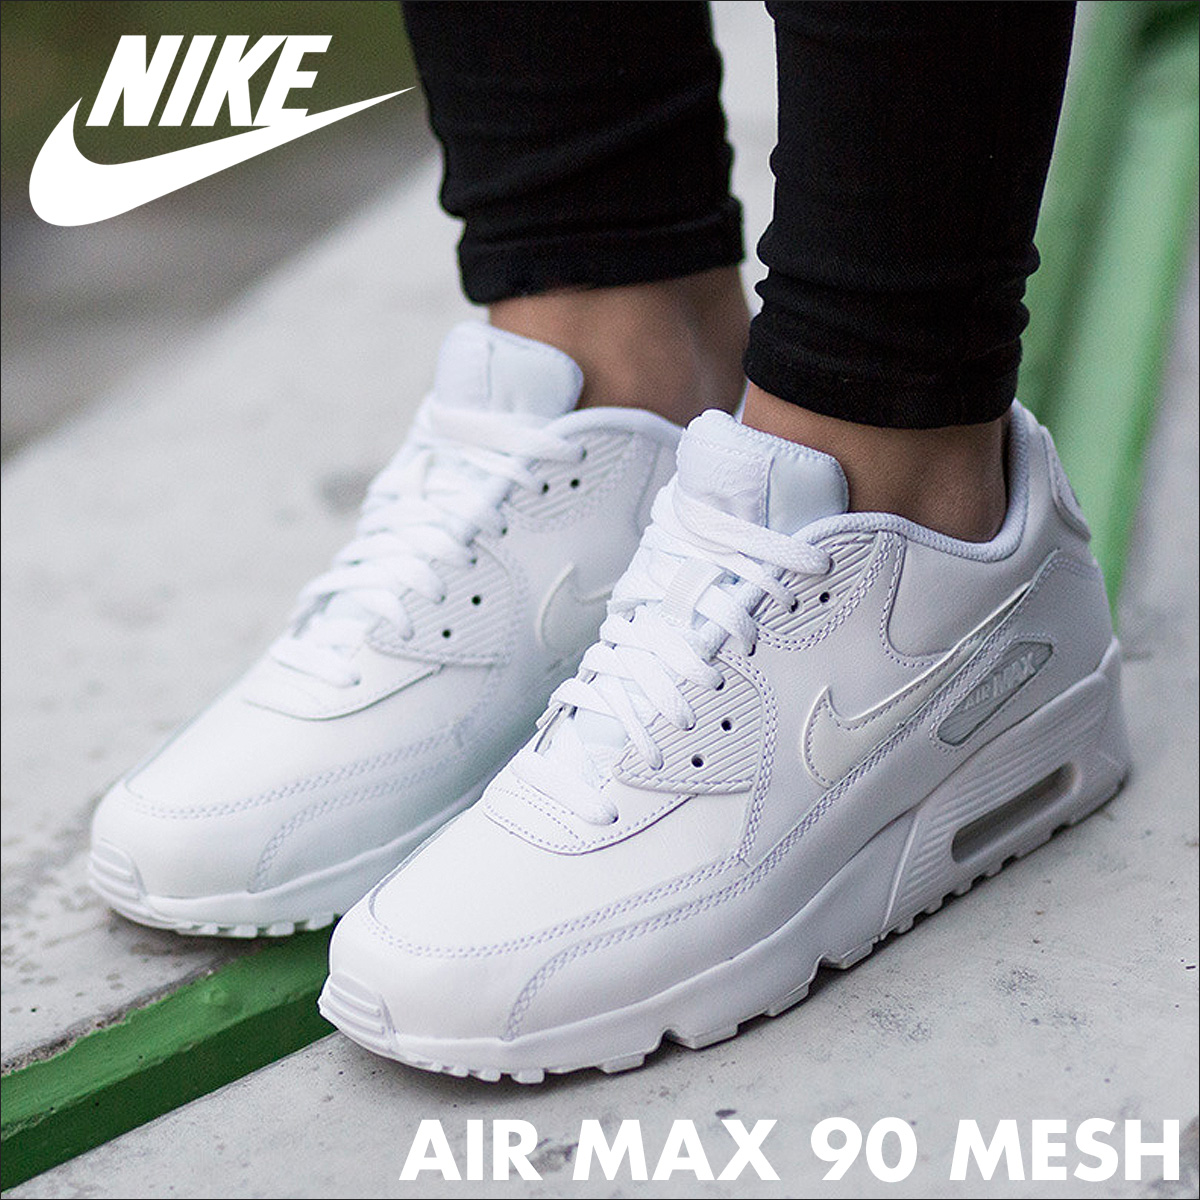 NIKE Kie Ney AMAX 90 Lady's sneakers AIR MAX 90 MESH GS 833,418 100 shoes white